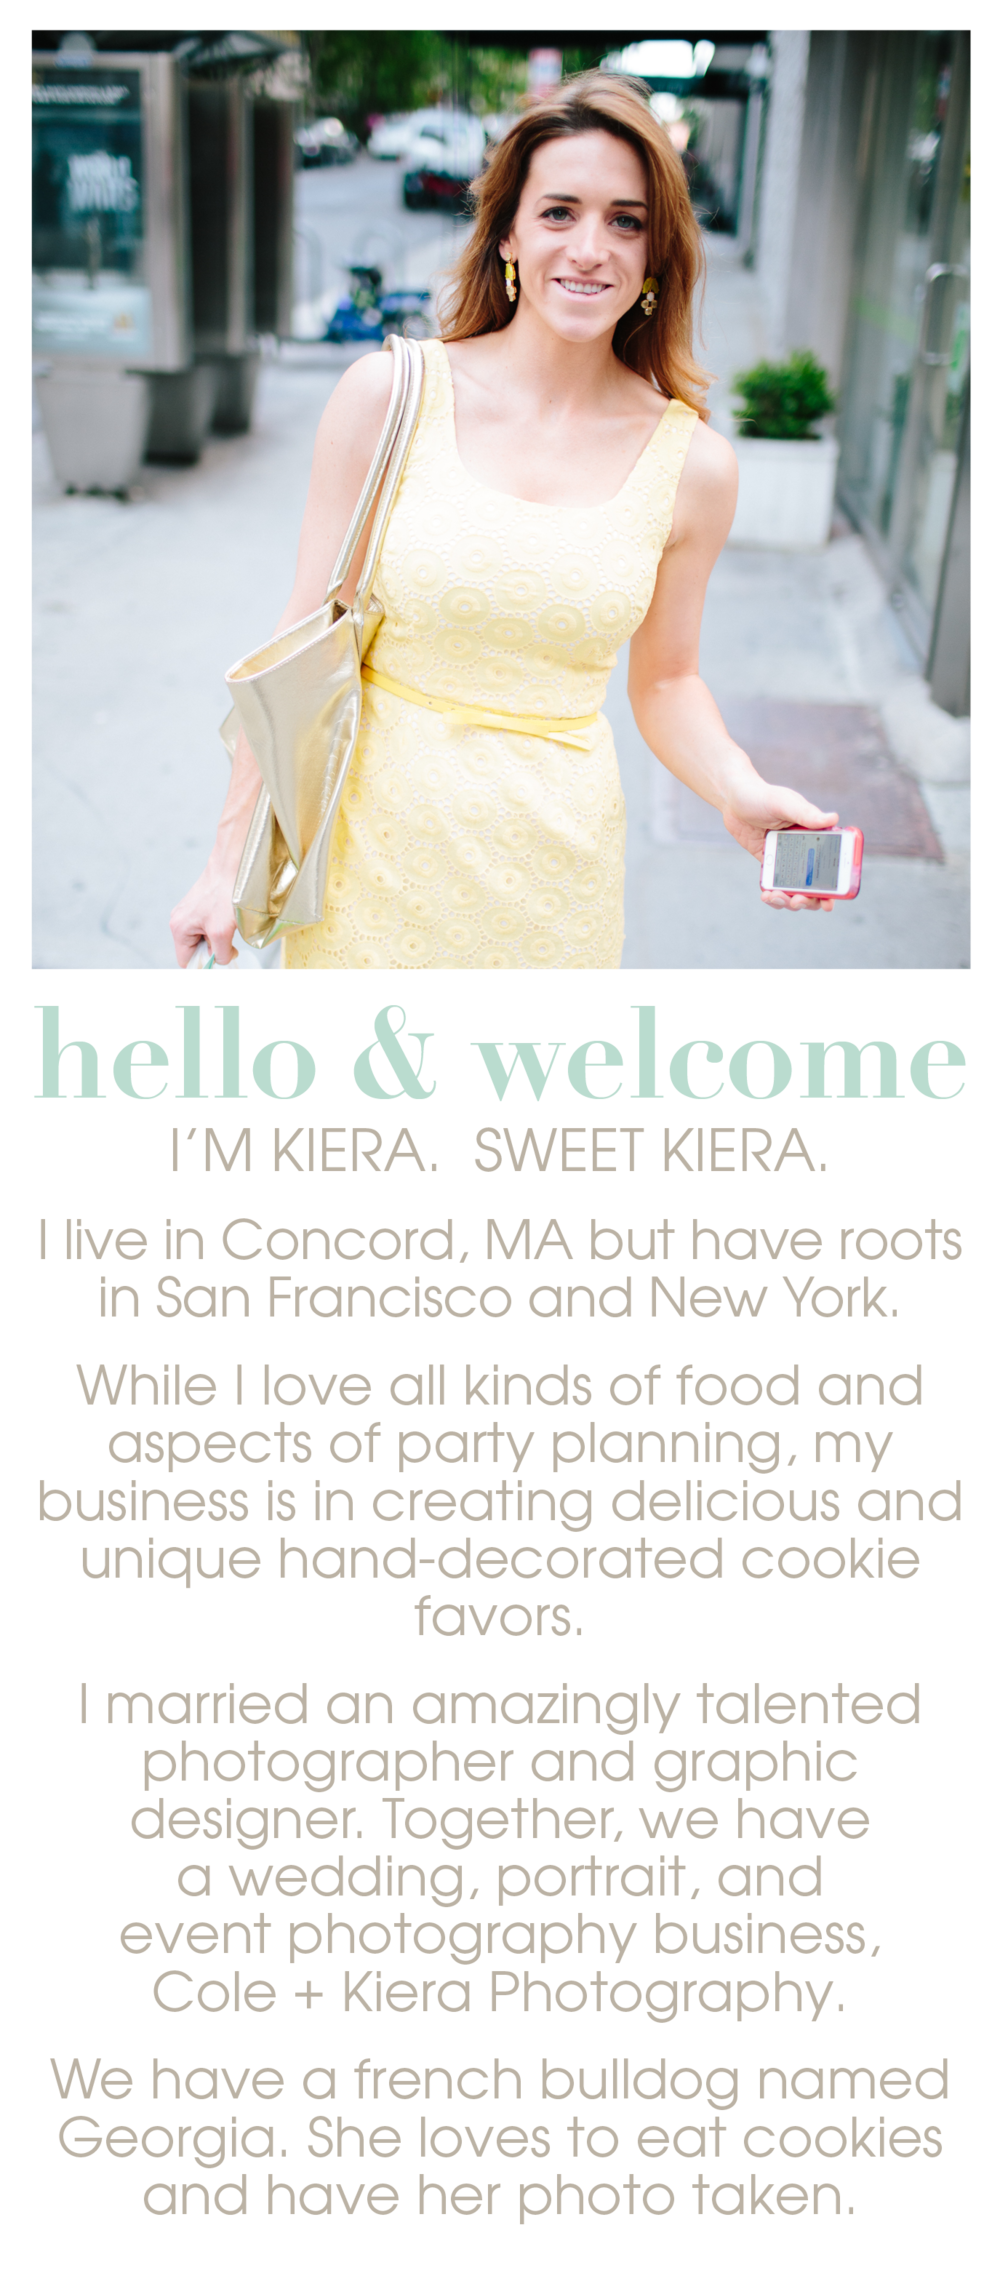 About Sweet Kiera